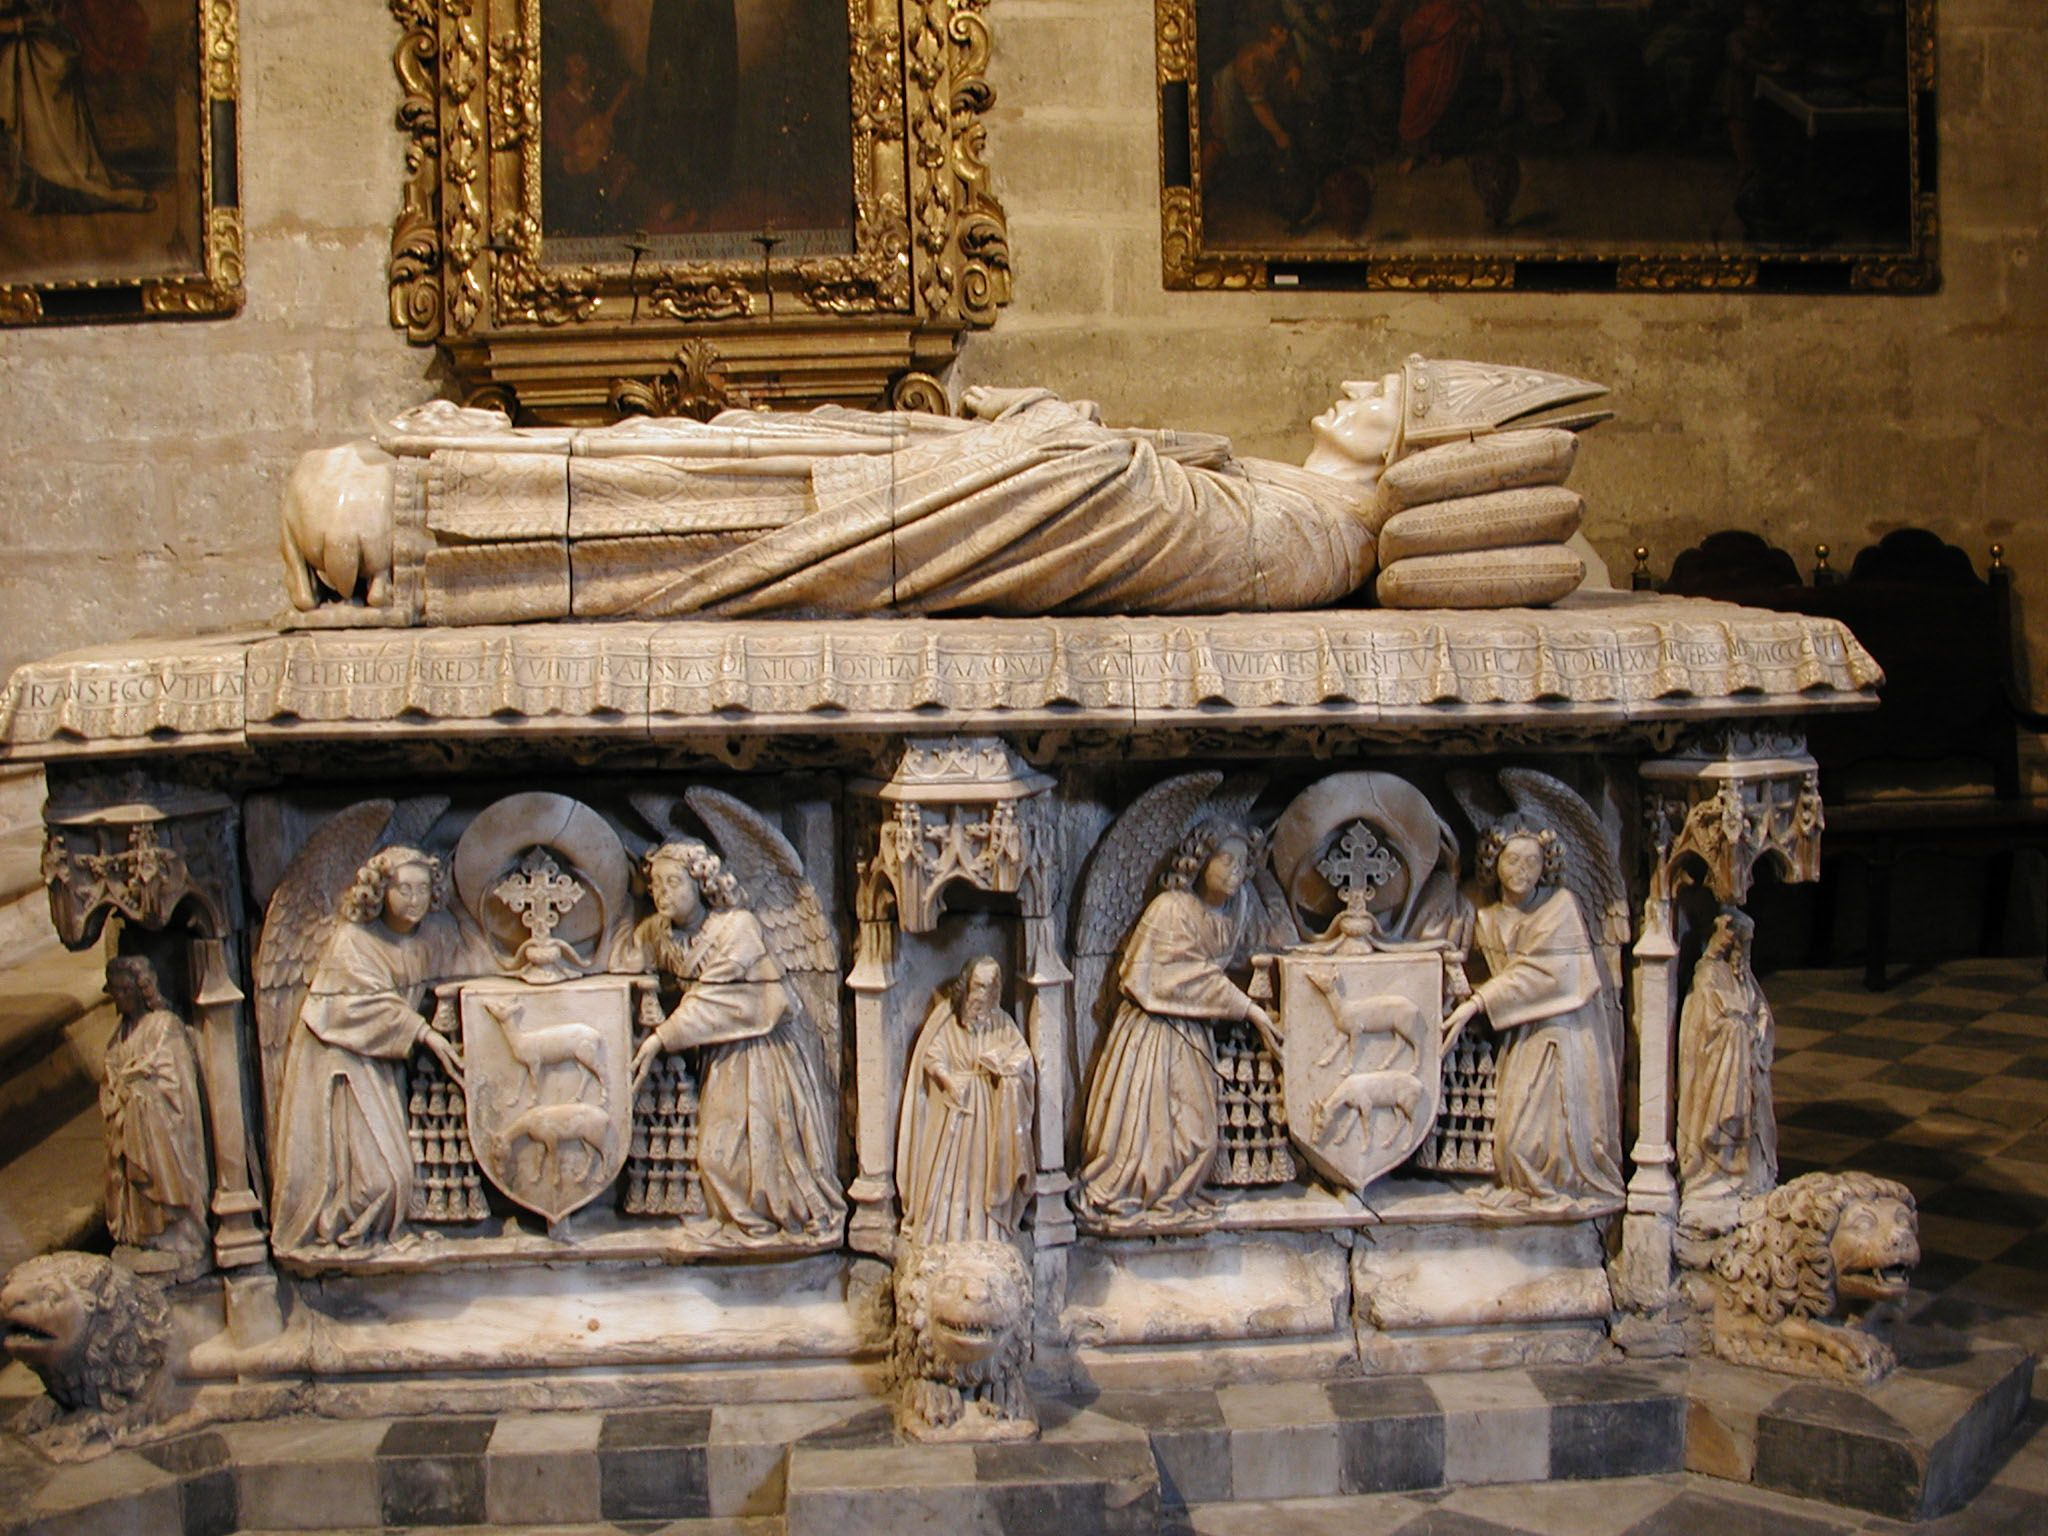 Tomb of Cardinal Juan de Cervantes - Seville Cathedral, Spain - Cervantes studied at theUniversity of Salamanca - hewas appointed Archdeacon of Seville and Procurator of the King of Castile to the Roman Curia in 1419. In 1452 he tried to negotiate peace between England and France. He was an important man hence this important tomb - MuseumPlanet.com - Tours on your iPad